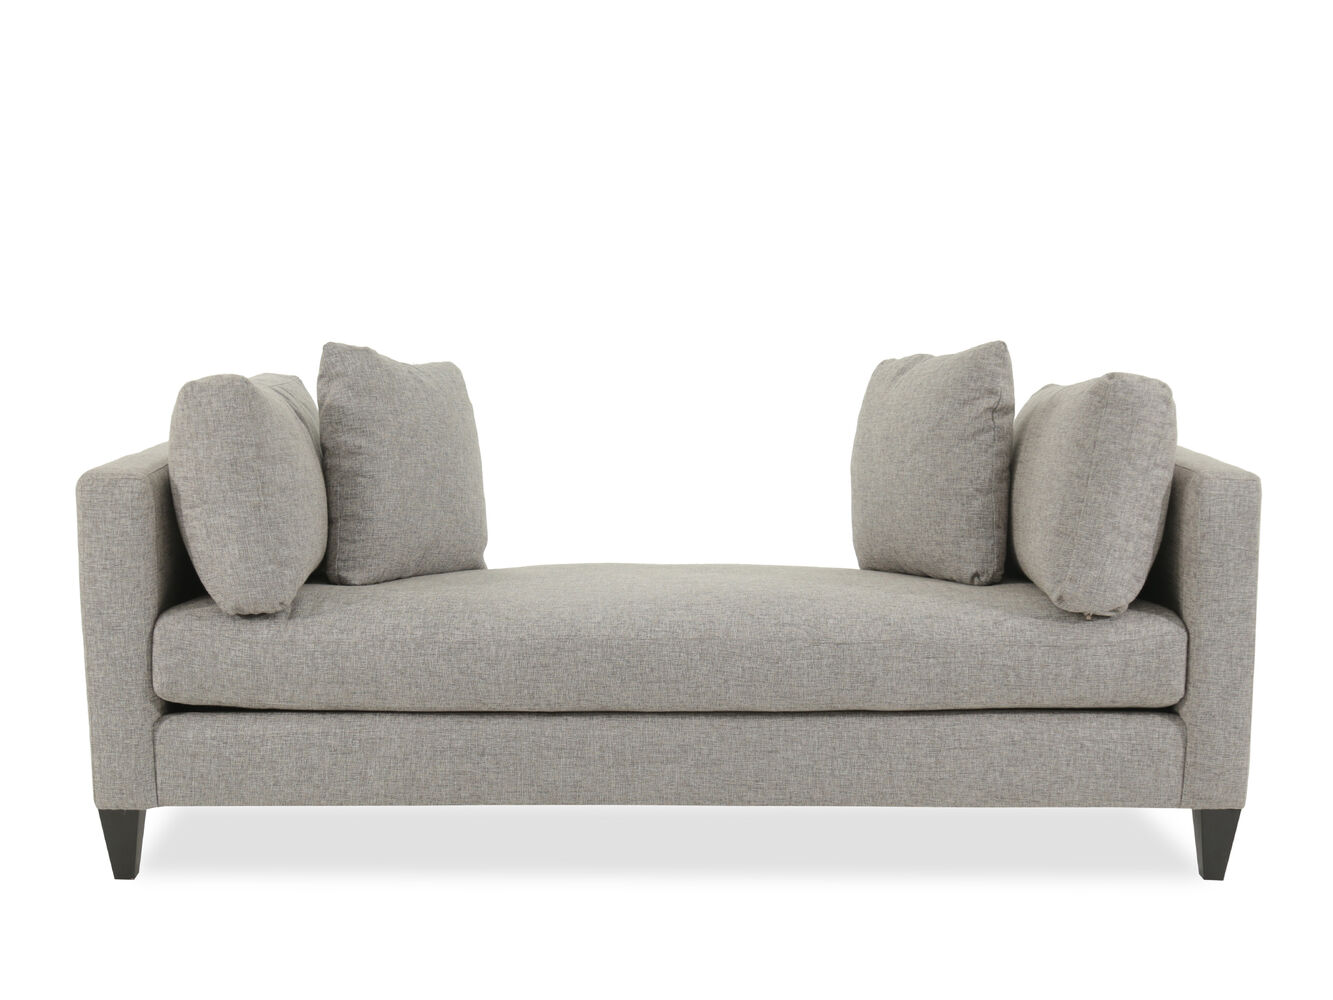 Bernhardt saxon gray chaise mathis brothers furniture for Bernhardt chaise